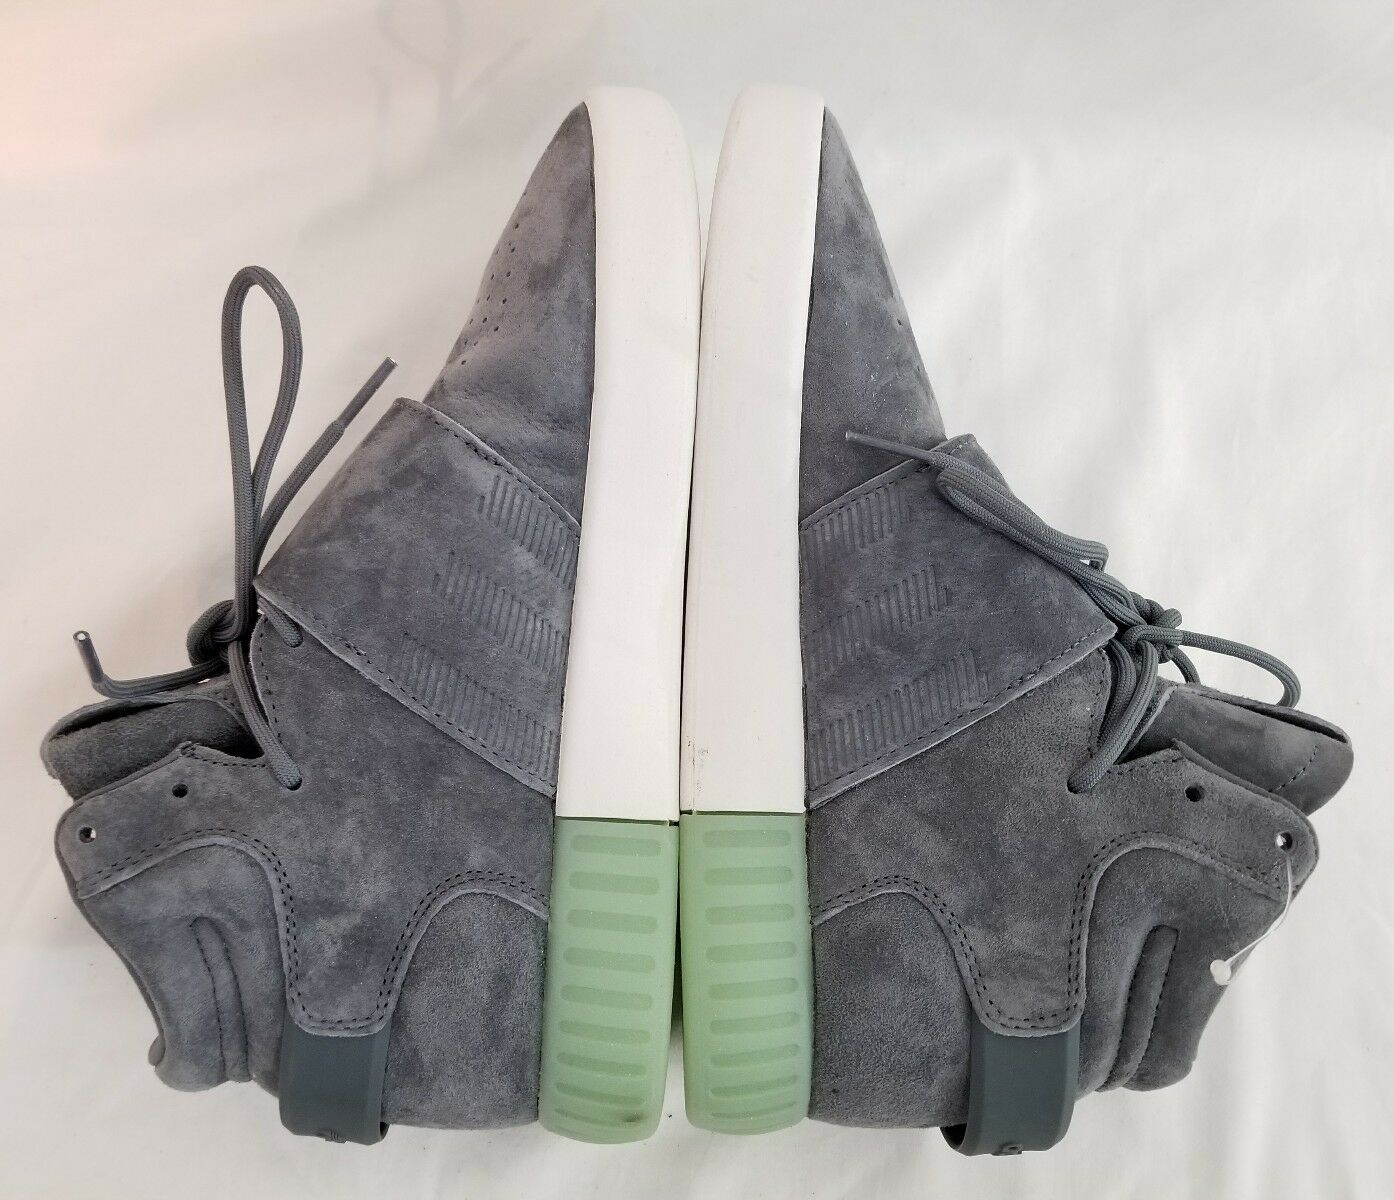 Adidas Originals Strap Tubular Invader Strap Originals Onix Gray Ice Green Sneakers Size 7 New e96168